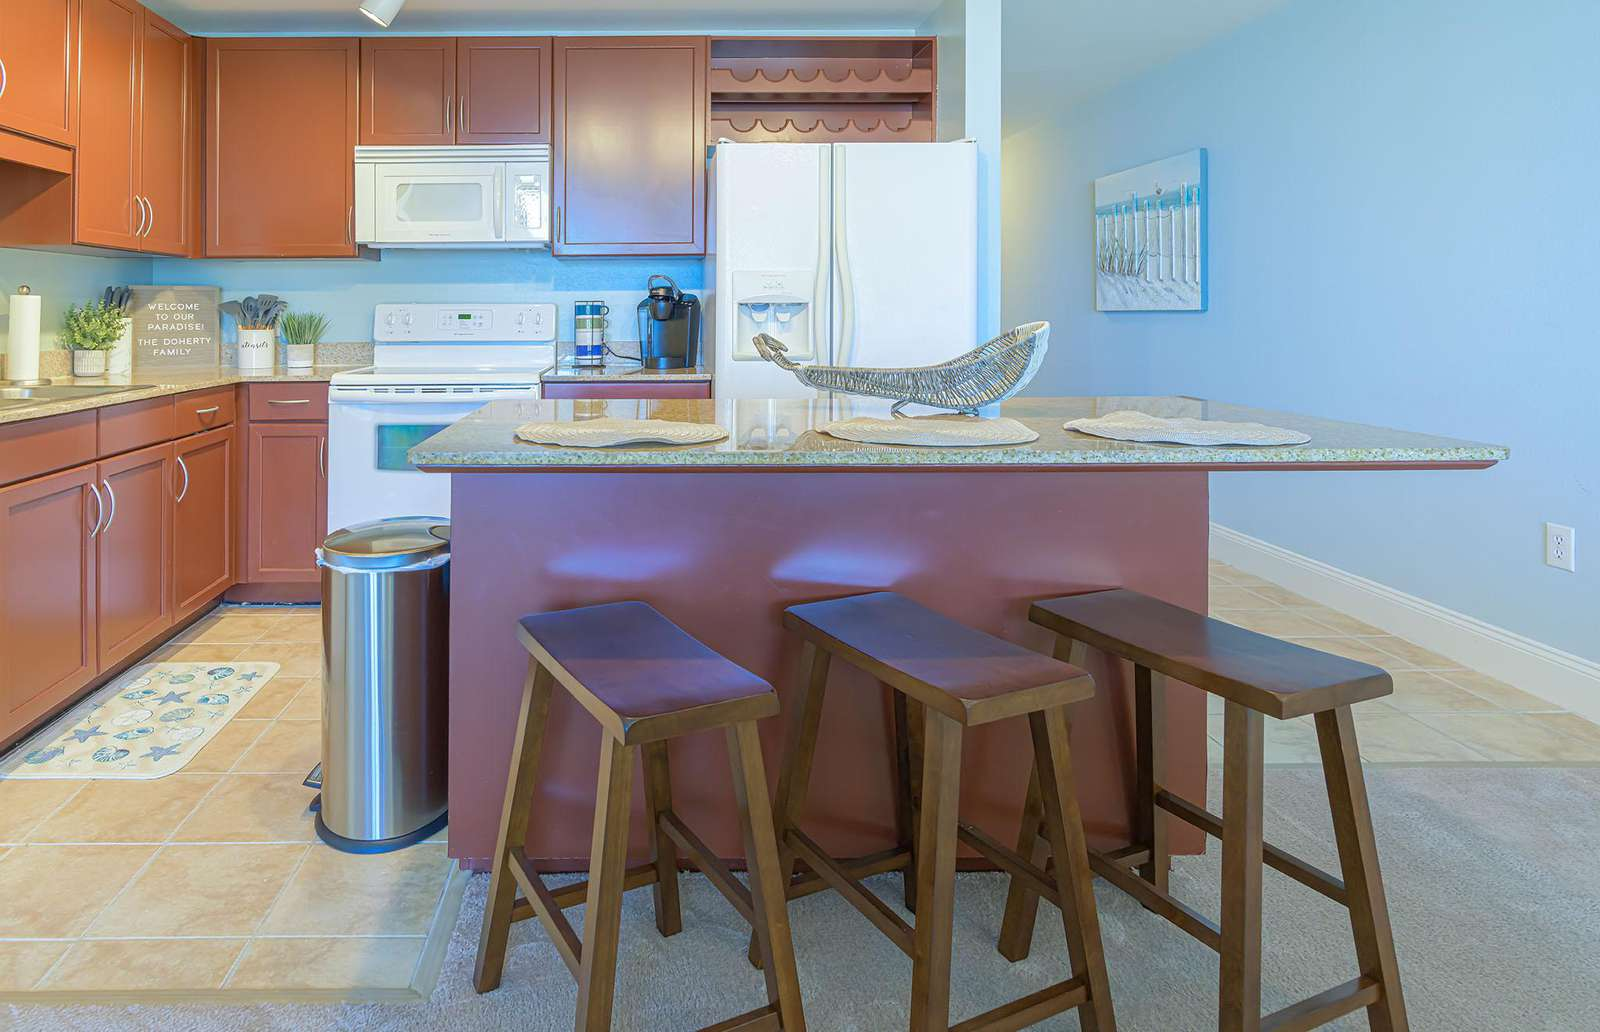 Seating for 3 at the eat-in stocked kitchen!